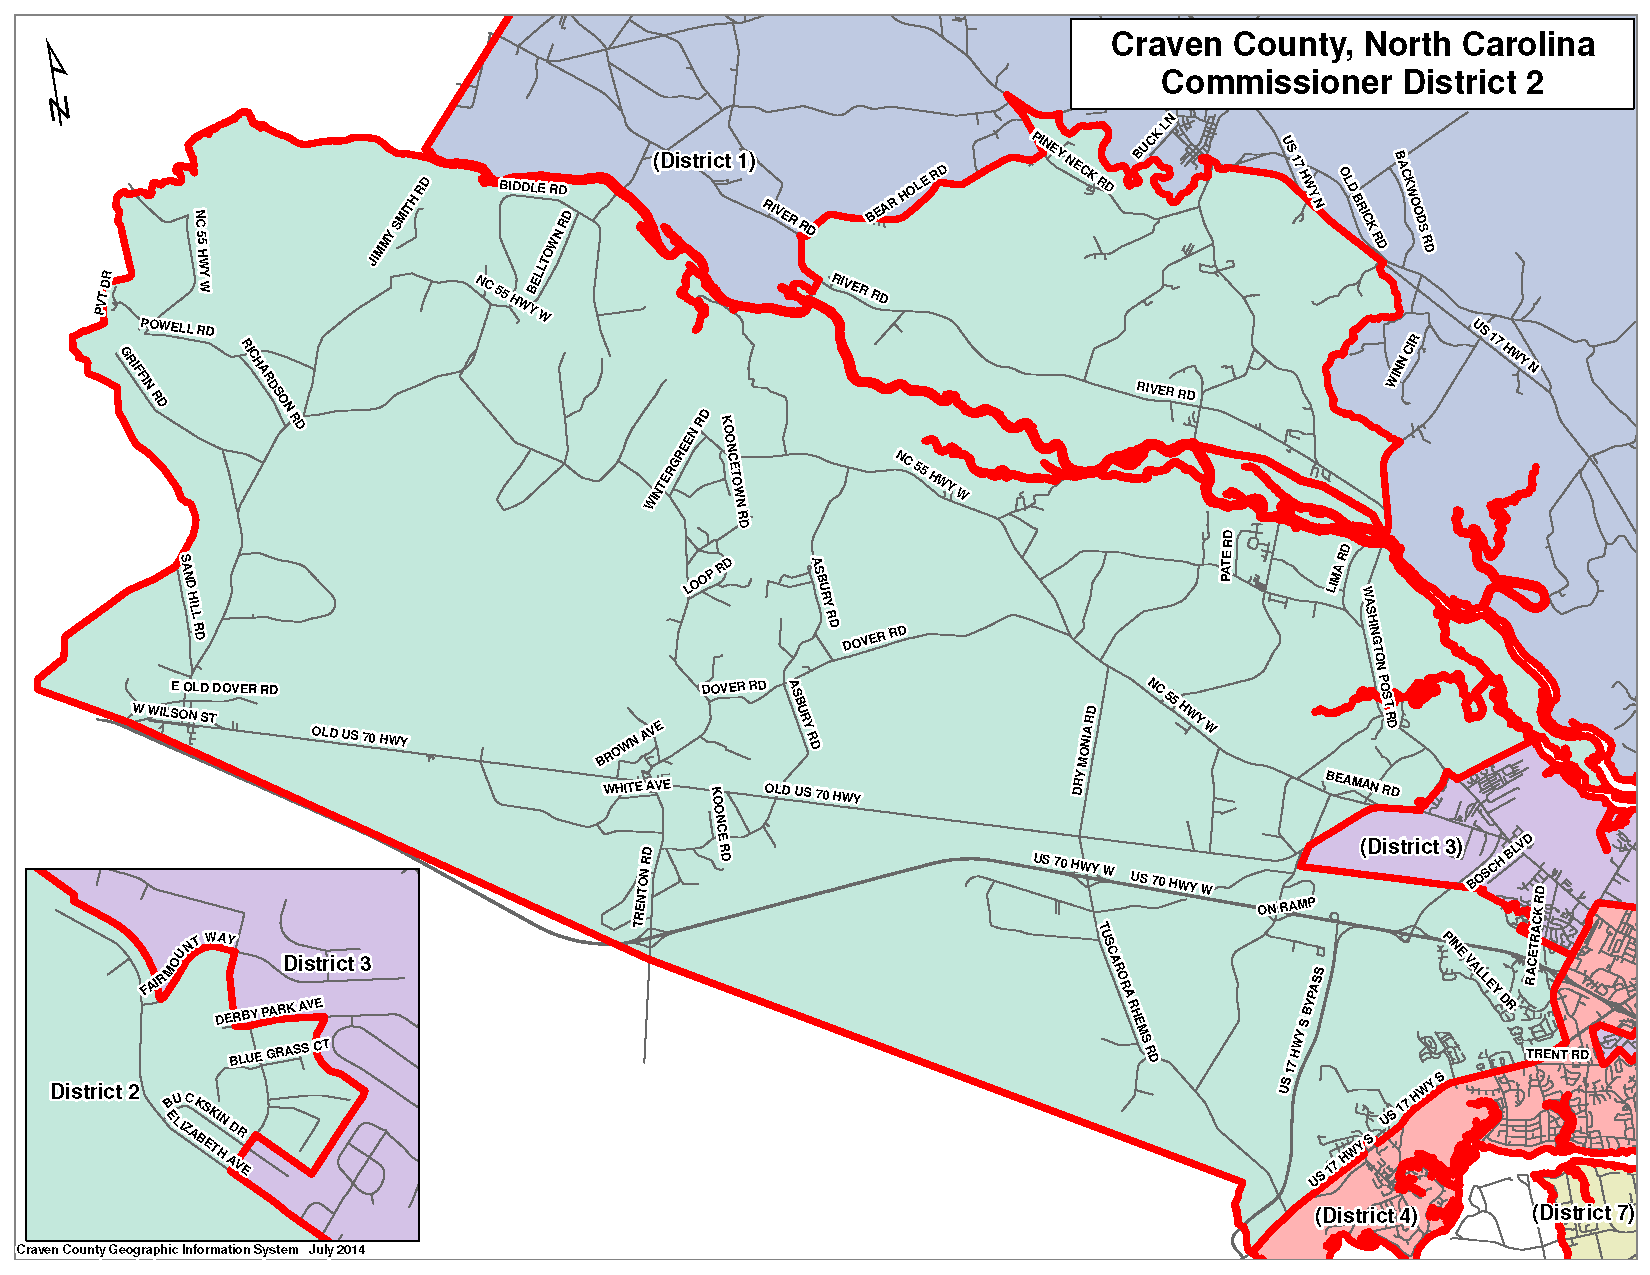 Commissioner District 2 Map